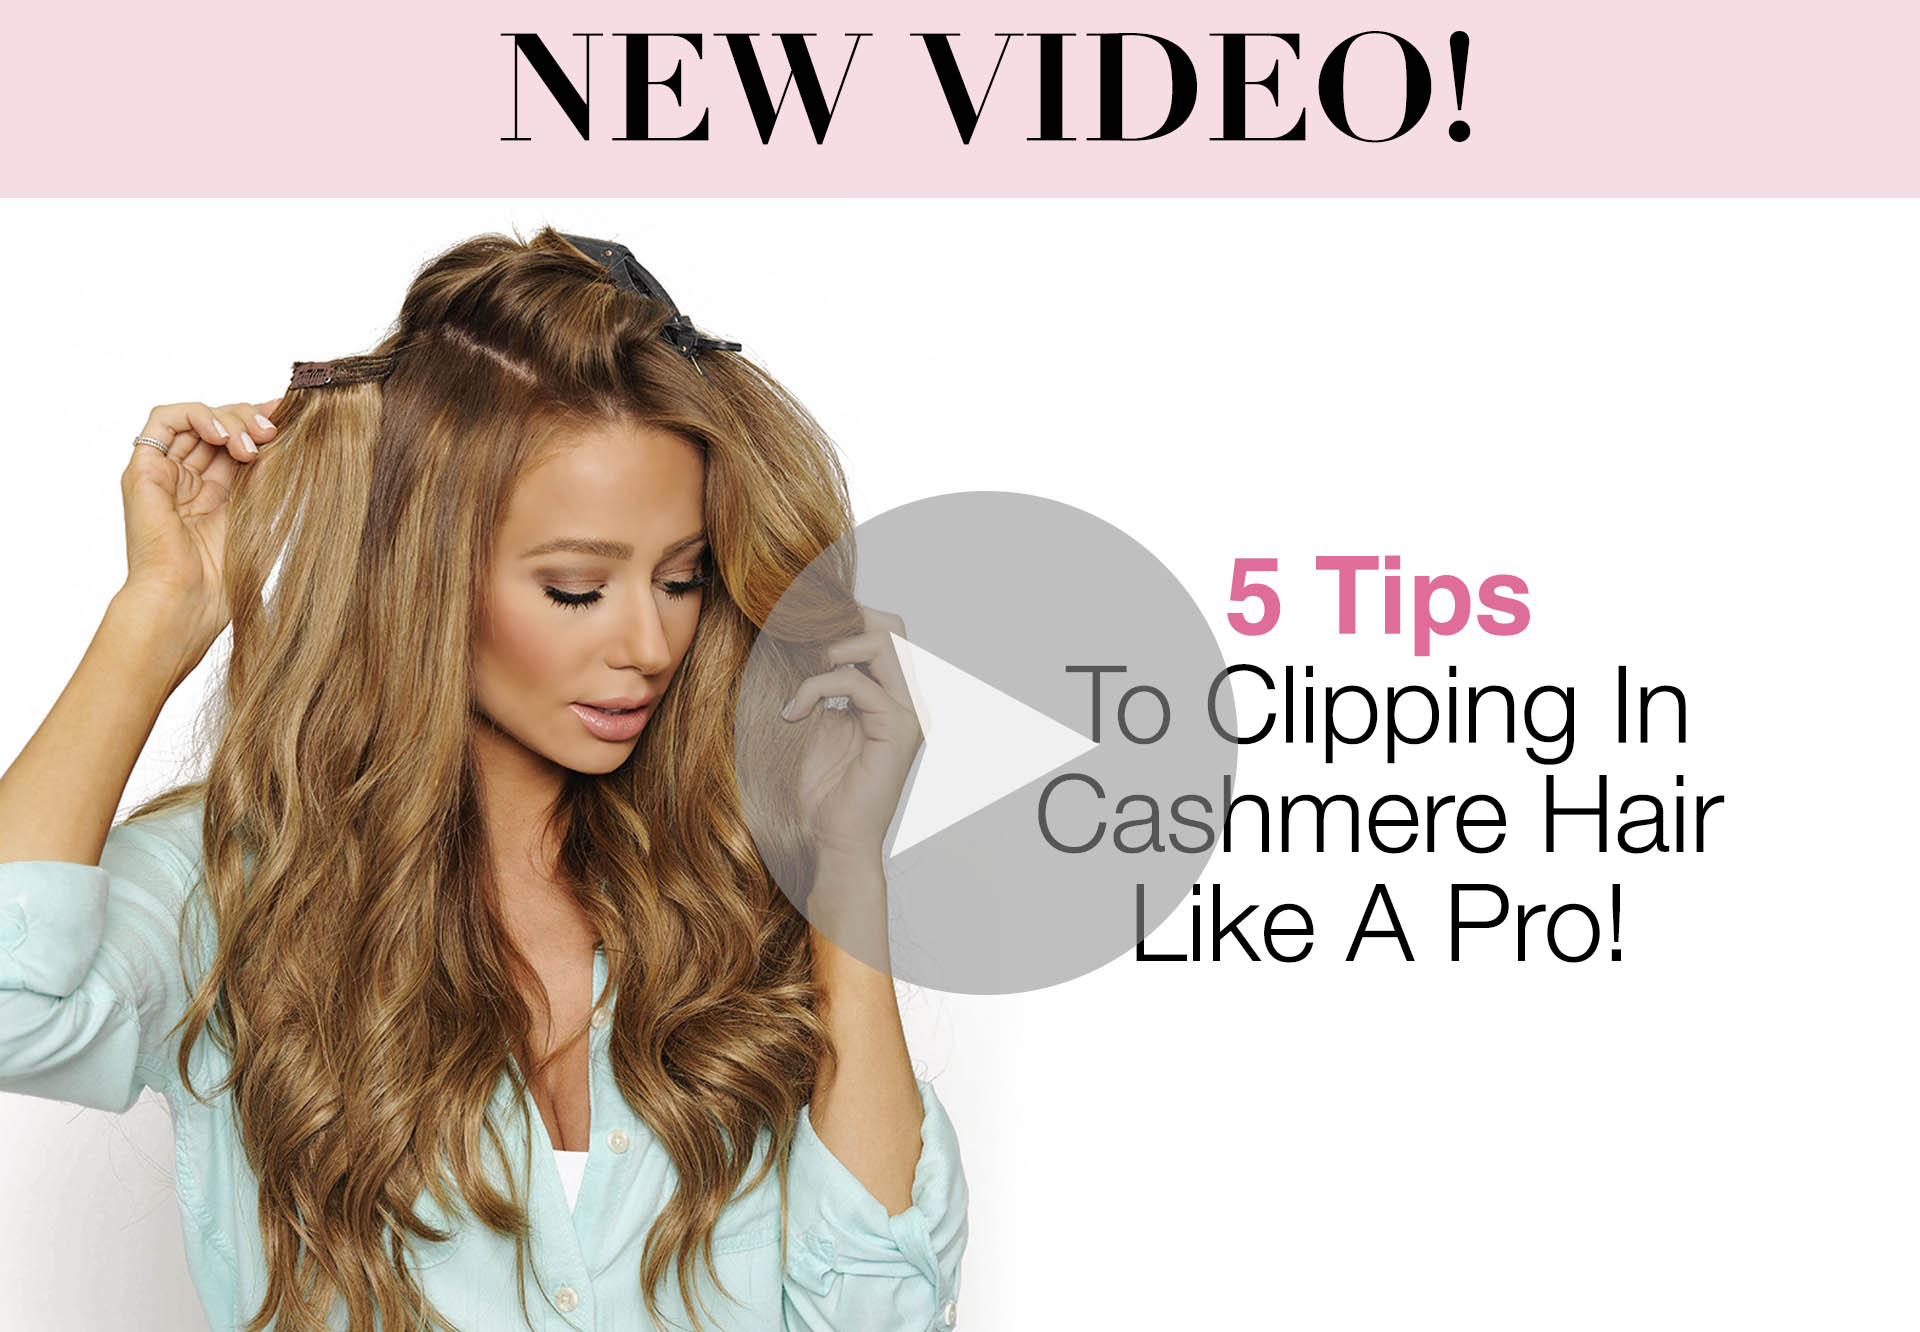 5 TIPS TO CLIP IN CASHMERE HAIR LIKE A PRO!